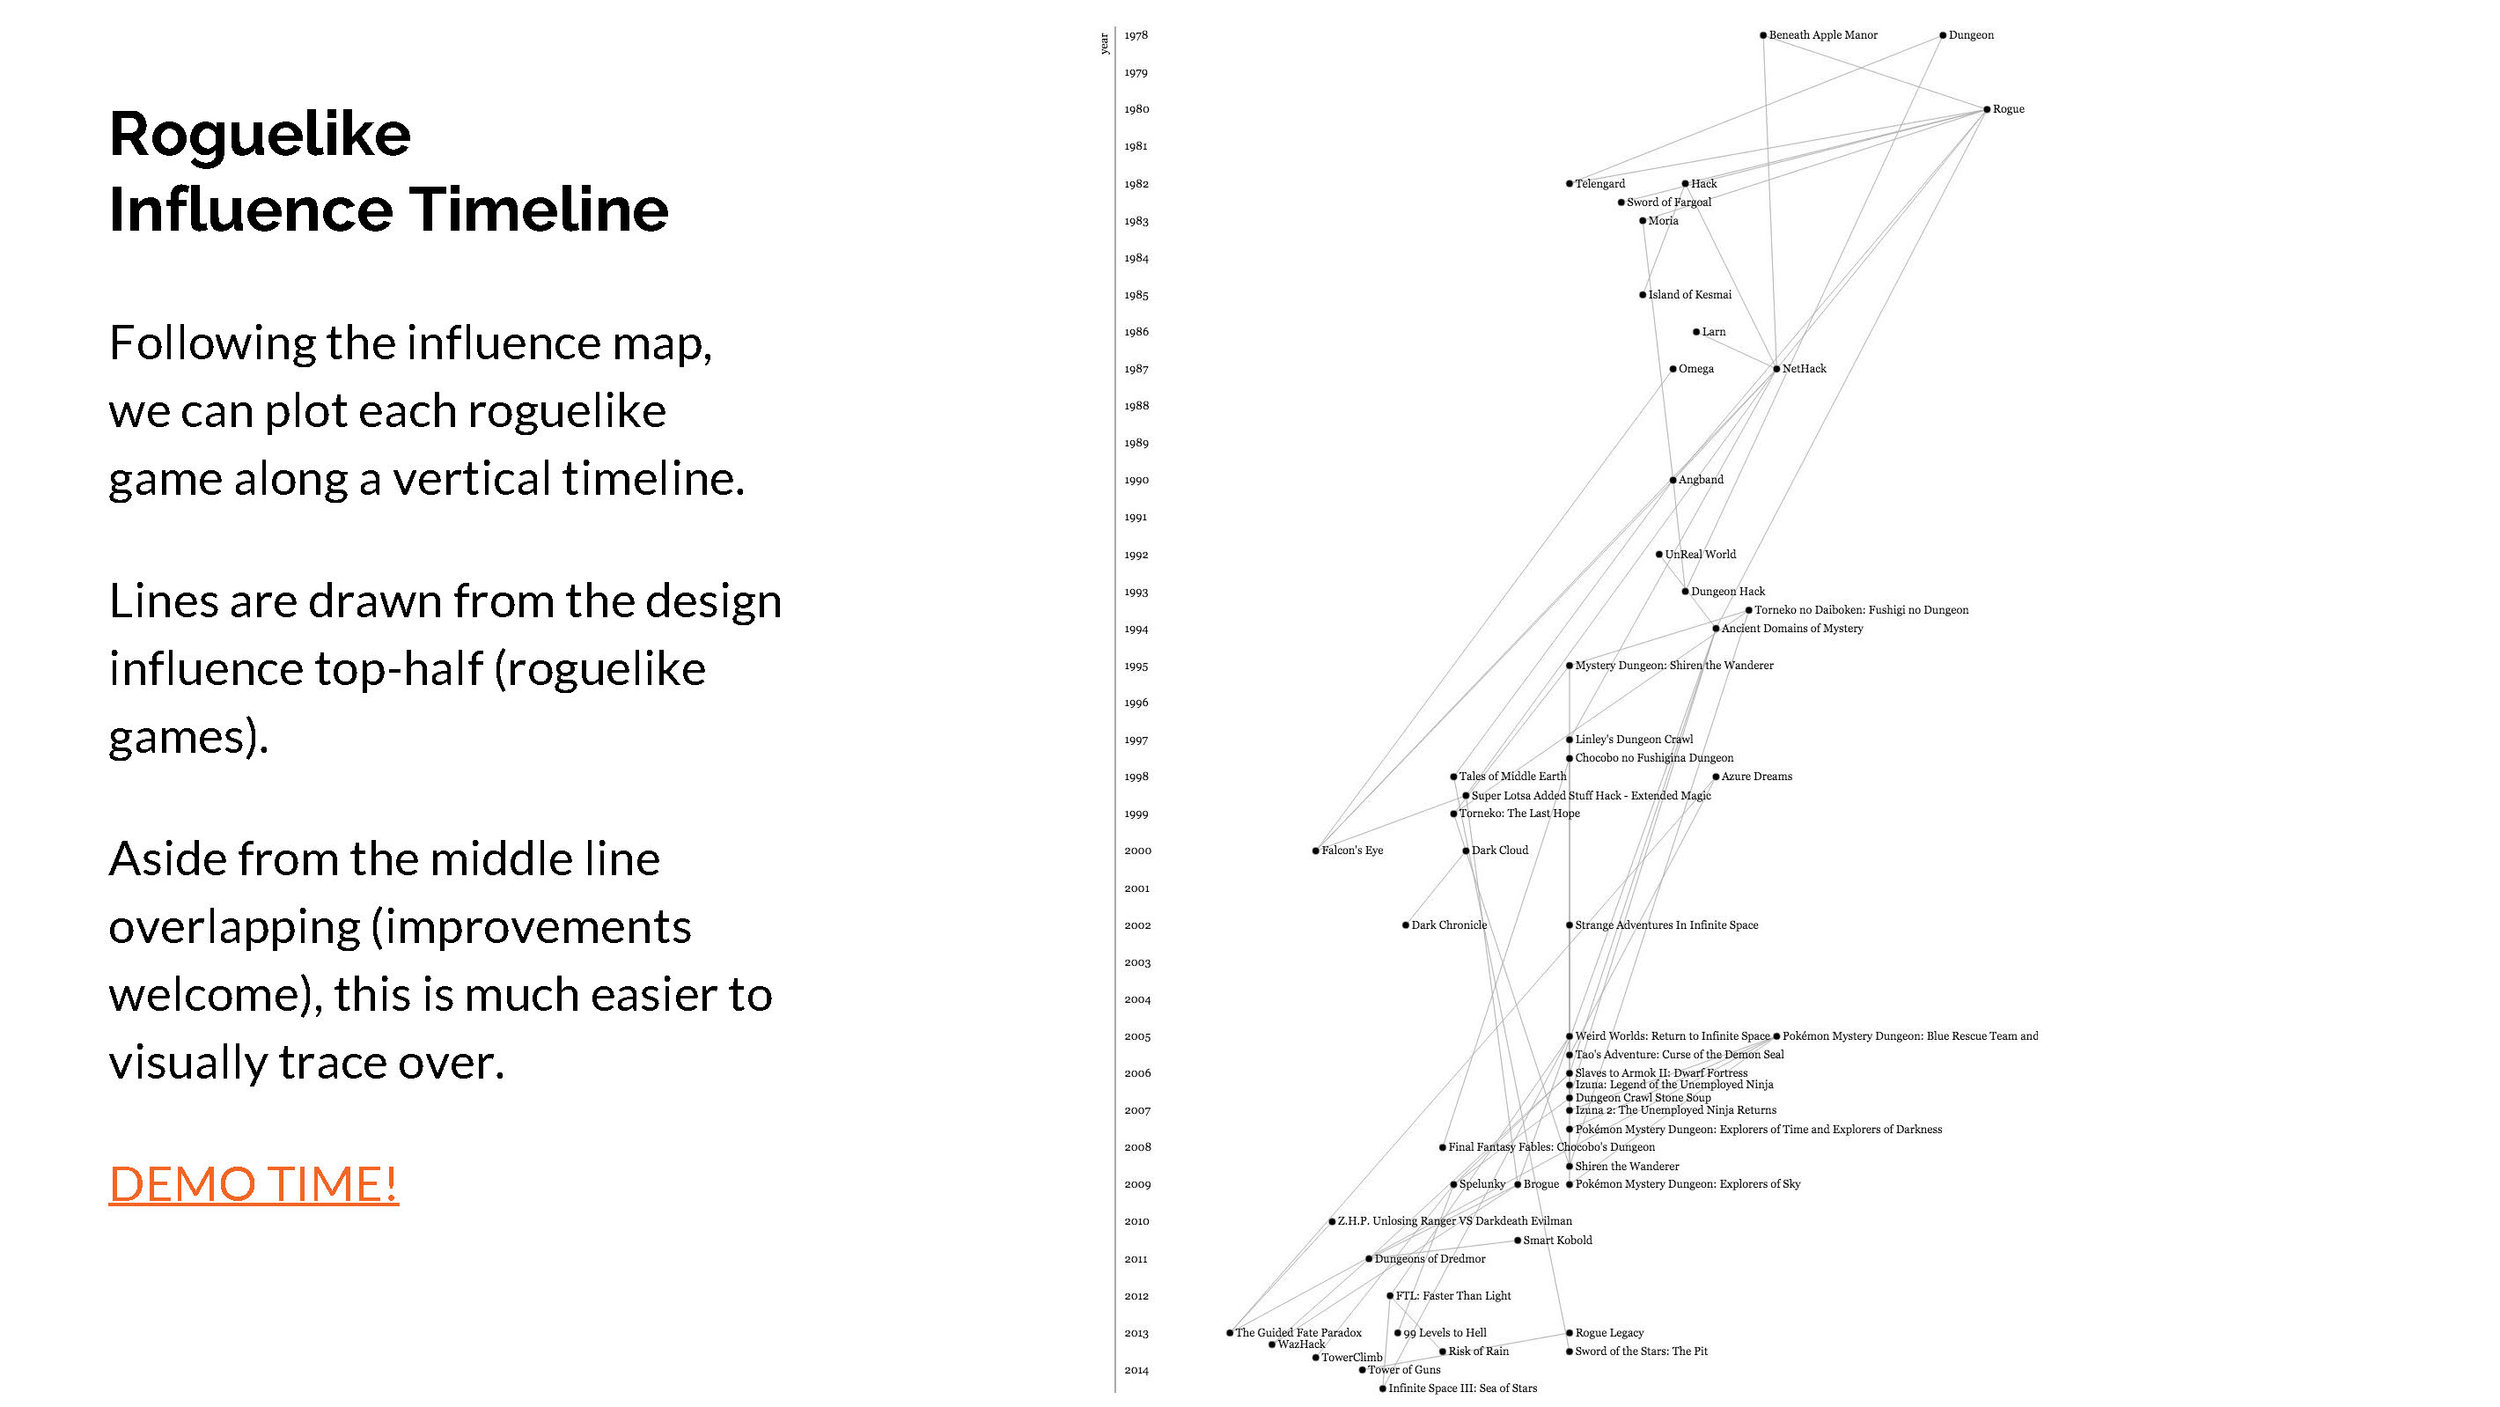 Finding Design Influence Within Roguelike Games_Page_17.jpg